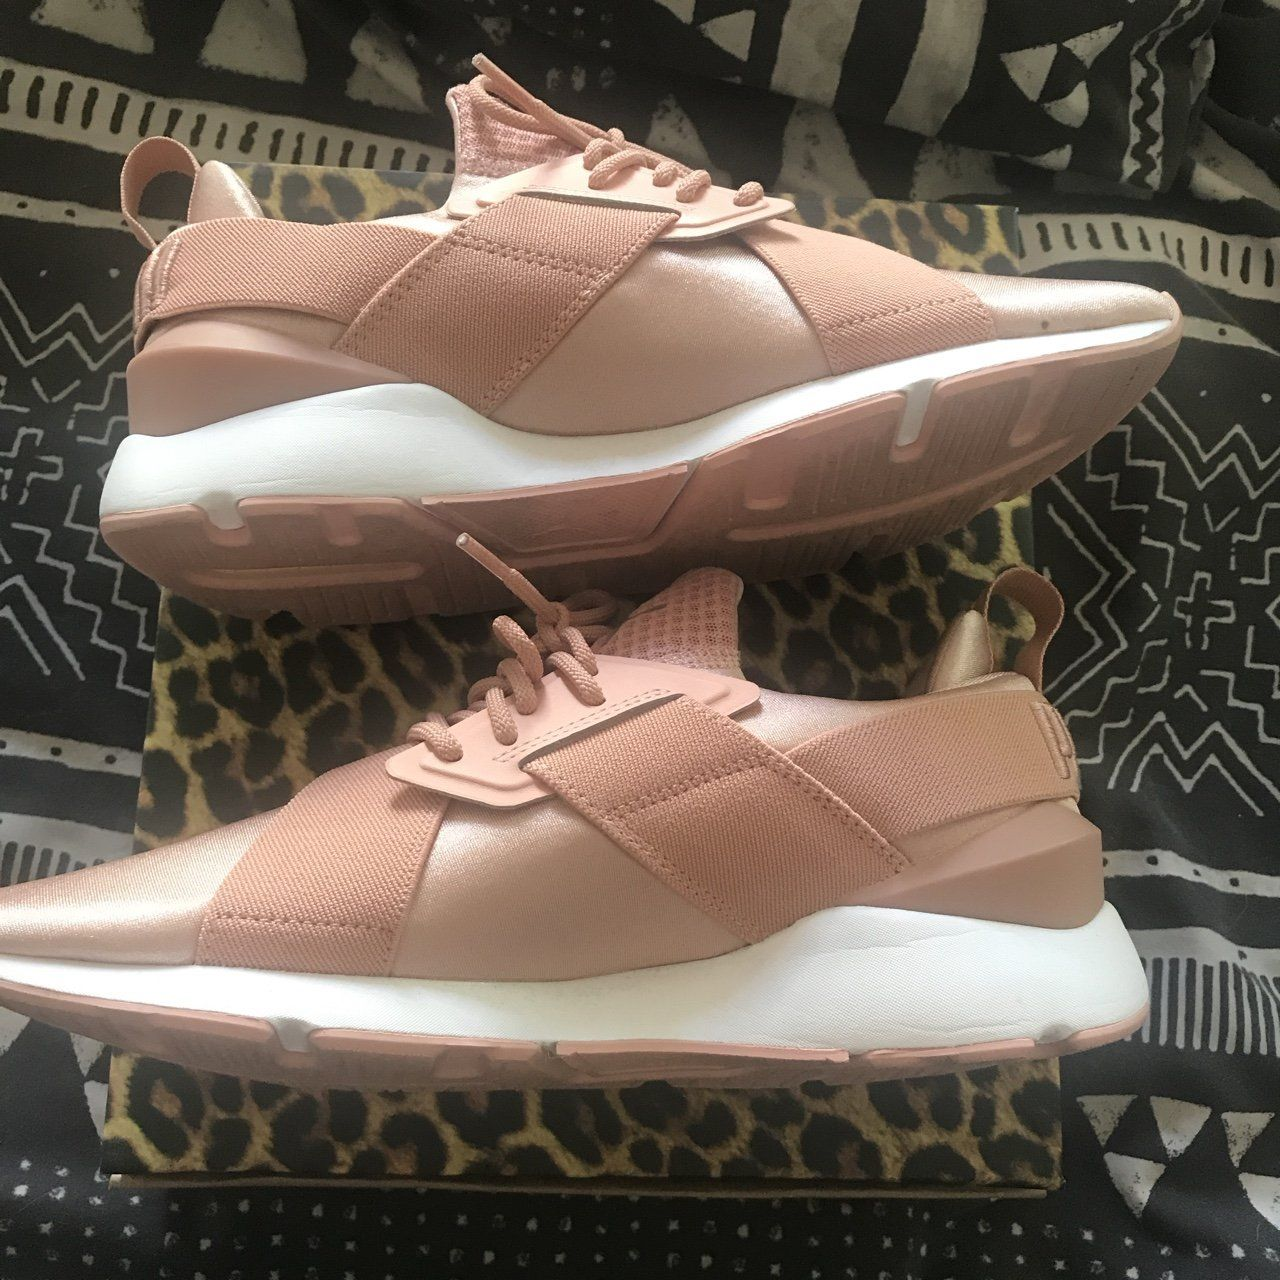 b5ee0d6142 Puma muse size 7 Worn once Free shipping - Depop